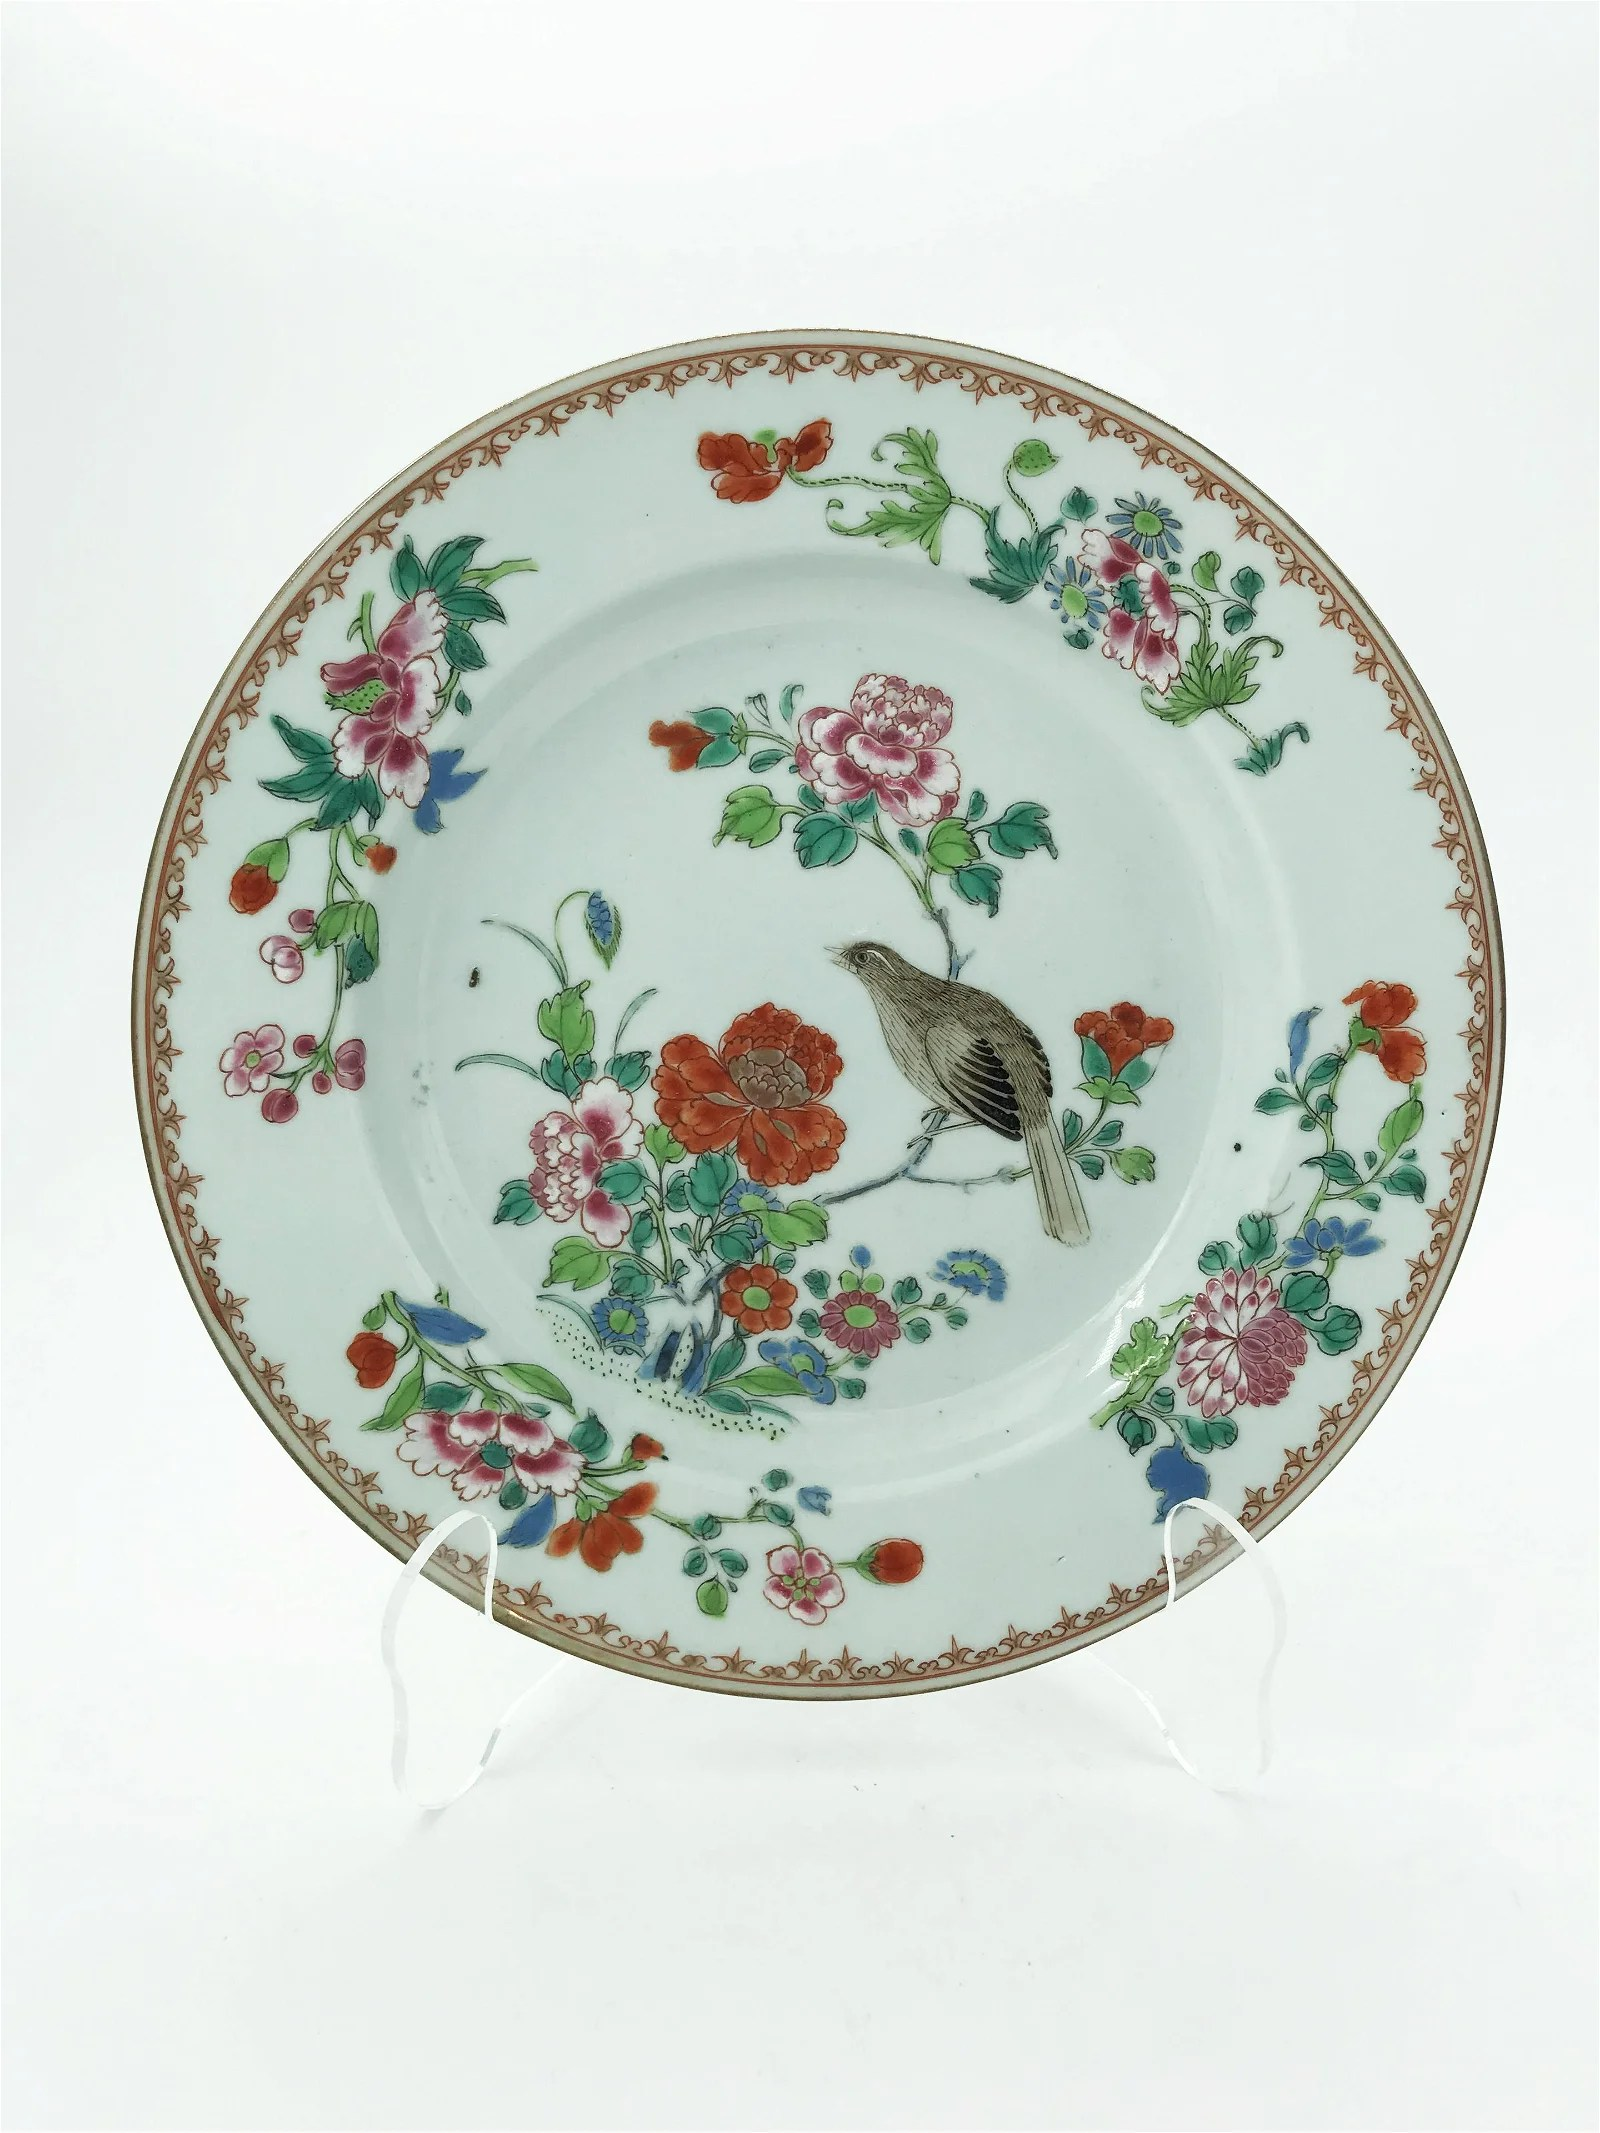 Chinese Export Famille Rose Dish, 19th c.